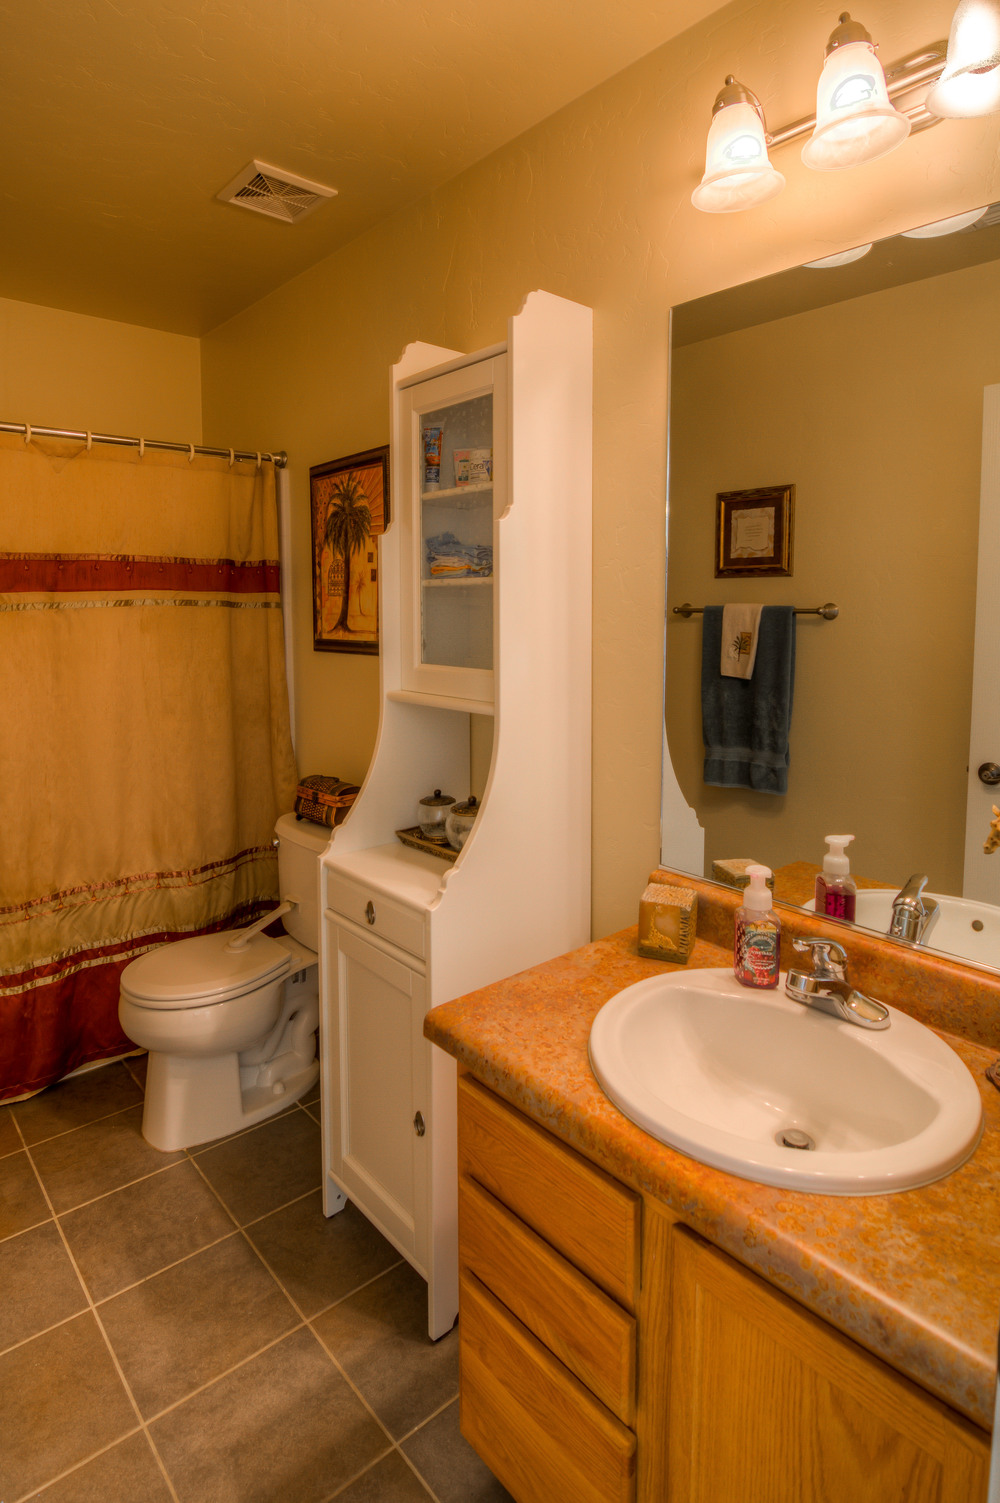 19 Upstairs Bathroom photo a.jpg